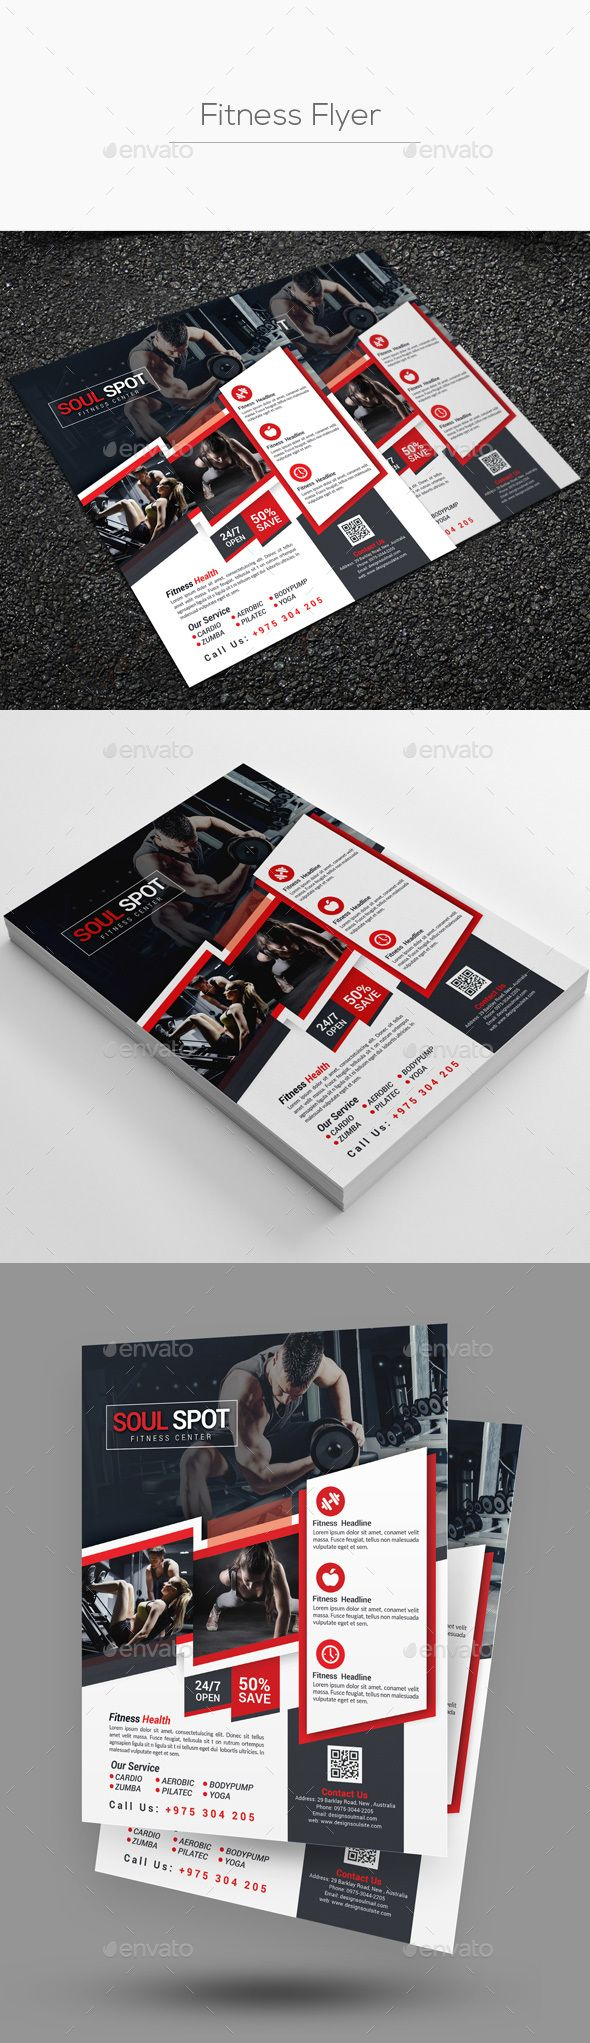 Fitness Flyer Template By Designsoul14 Fitness Flyer Template